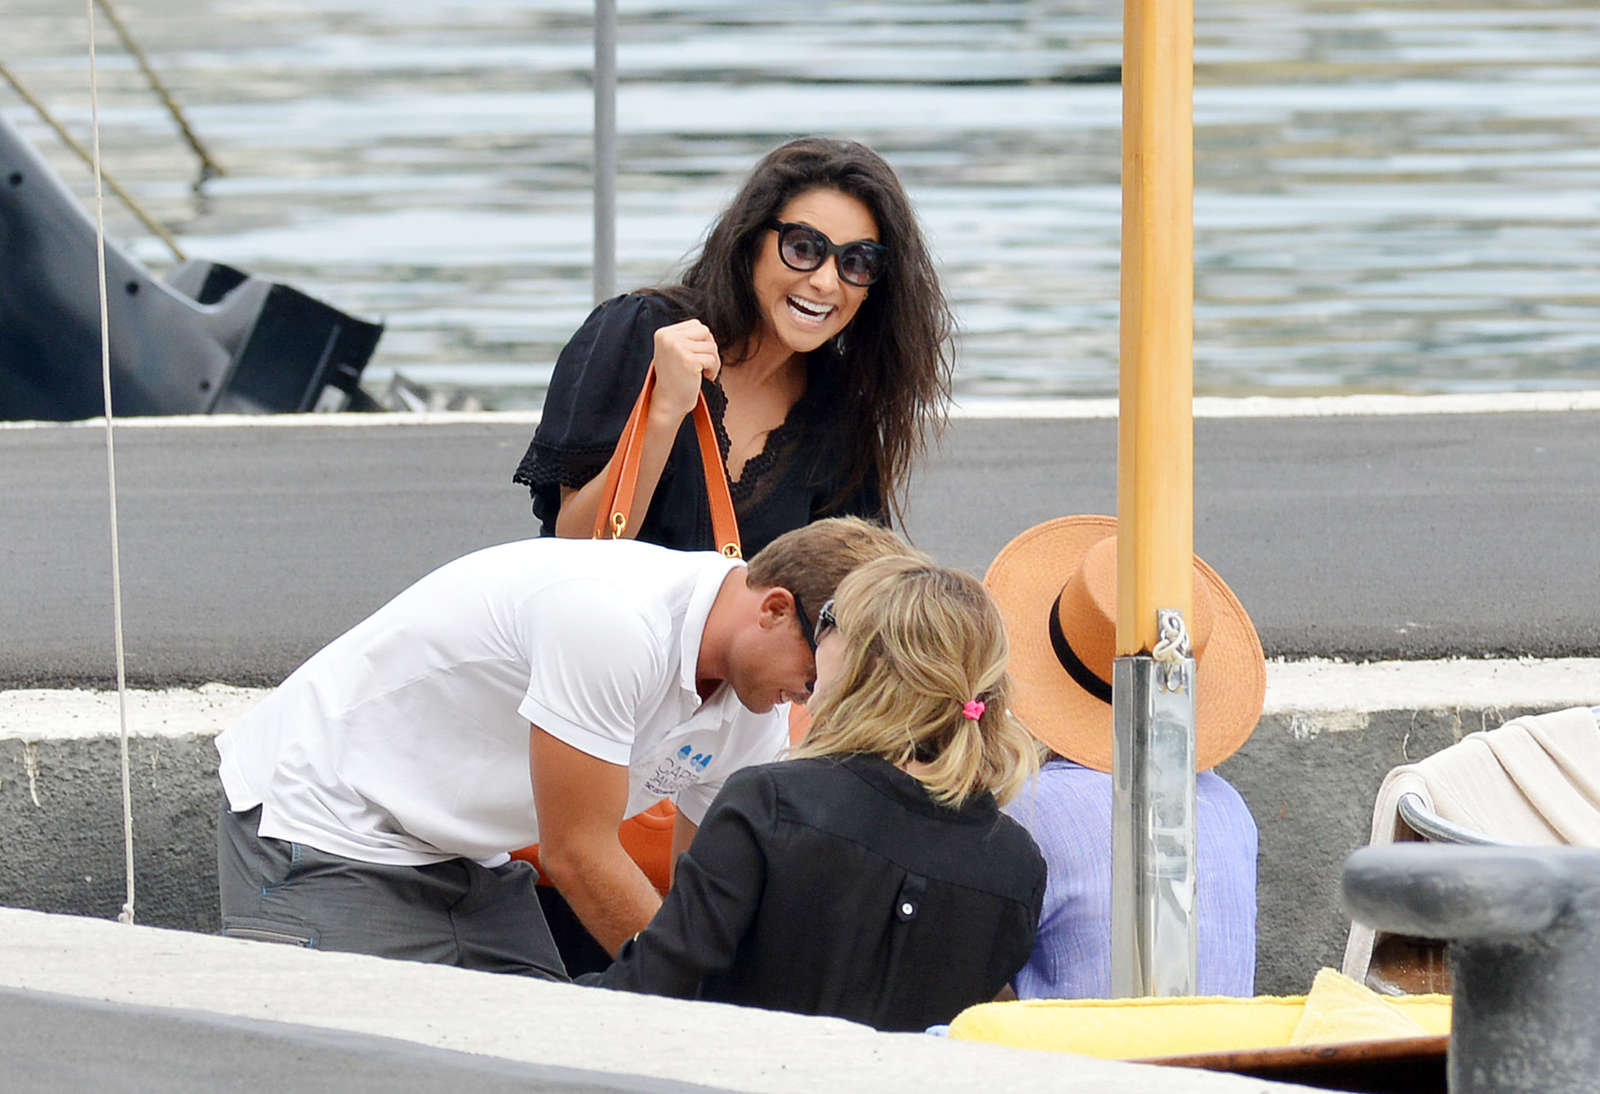 Ashley Benson 2016 : Ashley Benson, Shay Mitchell and Troian Bellisario on a boat in Capri -29